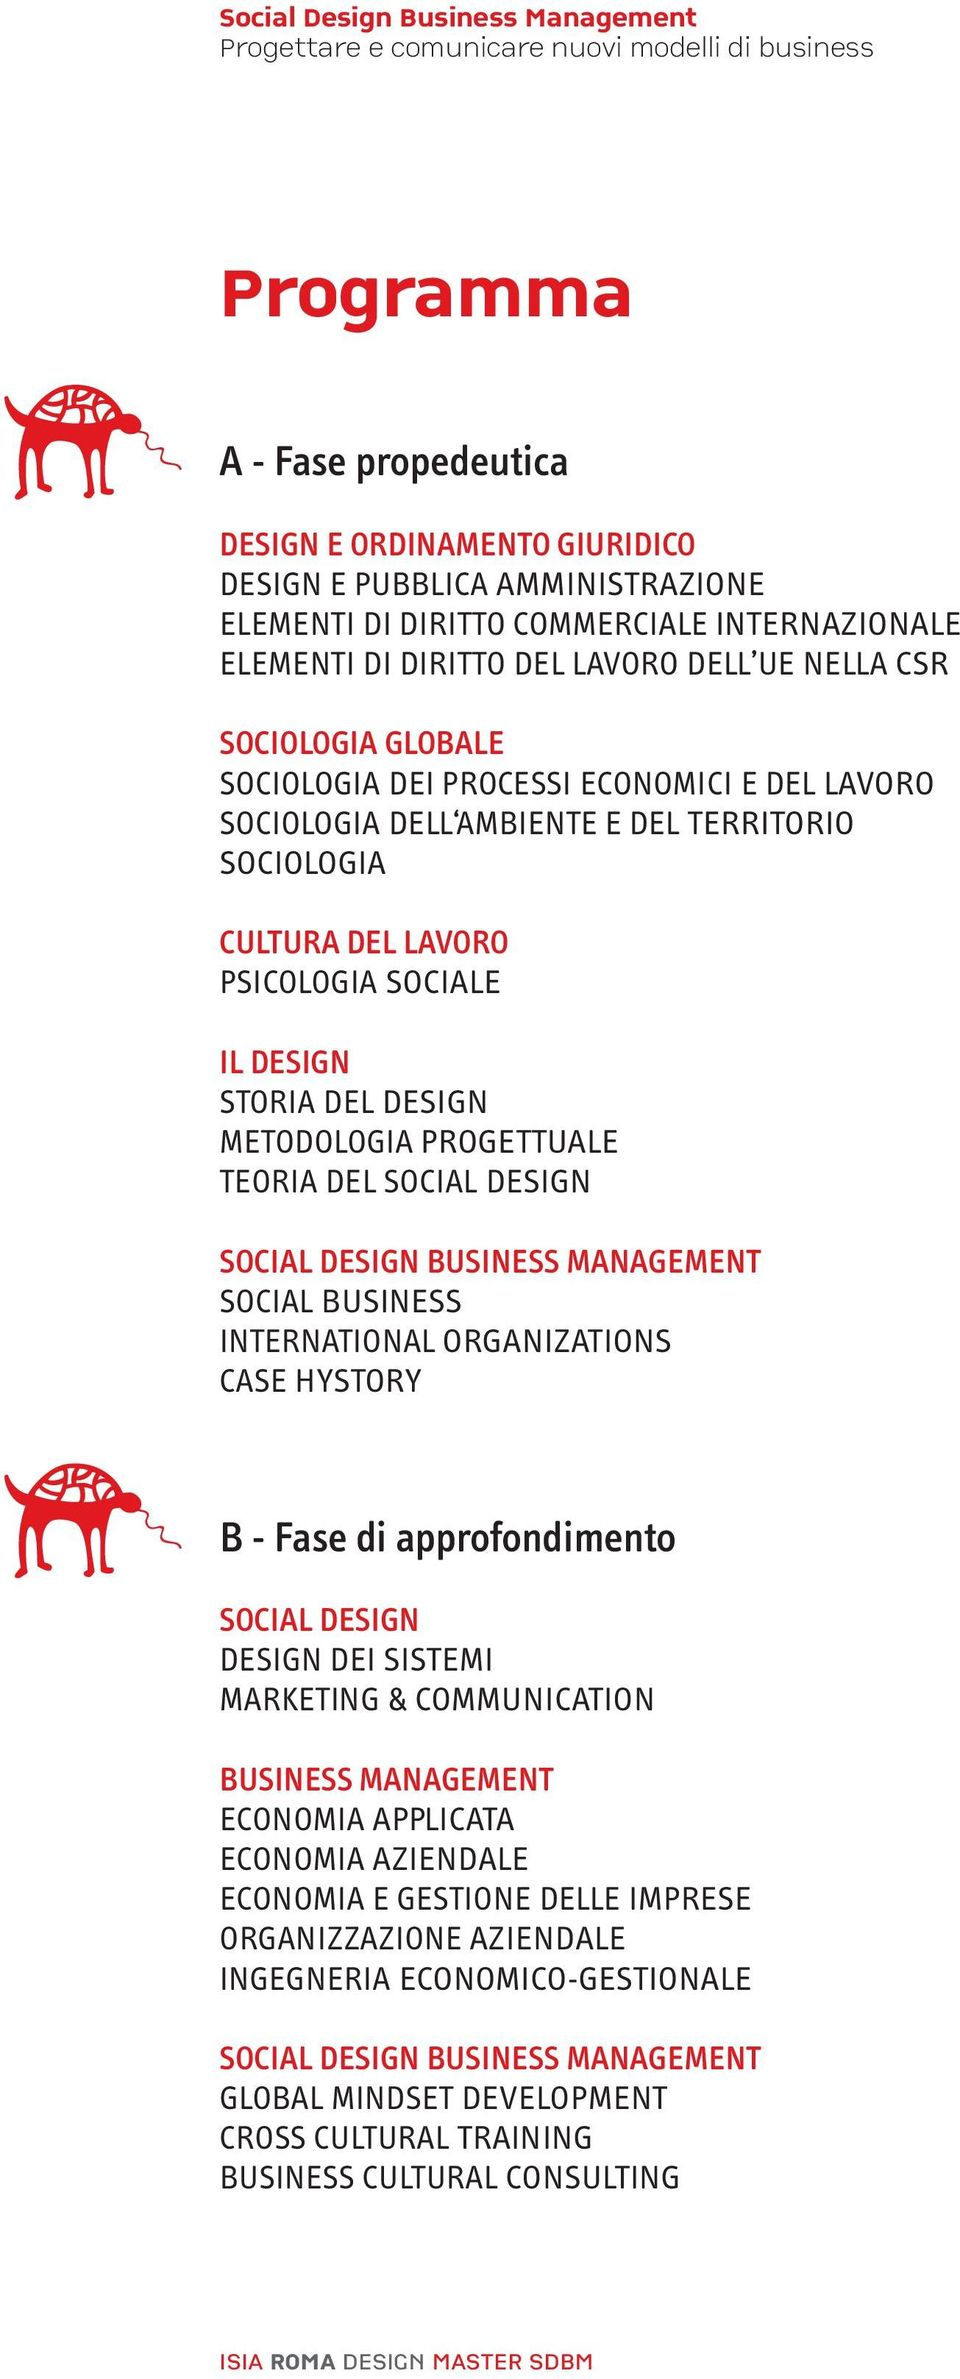 PROGETTUALE TEORIA DEL SOCIAL DESIGN SOCIAL DESIGN BUSINESS MANAGEMENT SOCIAL BUSINESS INTERNATIONAL ORGANIZATIONS CASE HYSTORY B - Fase di approfondimento SOCIAL DESIGN DESIGN DEI SISTEMI MARKETING